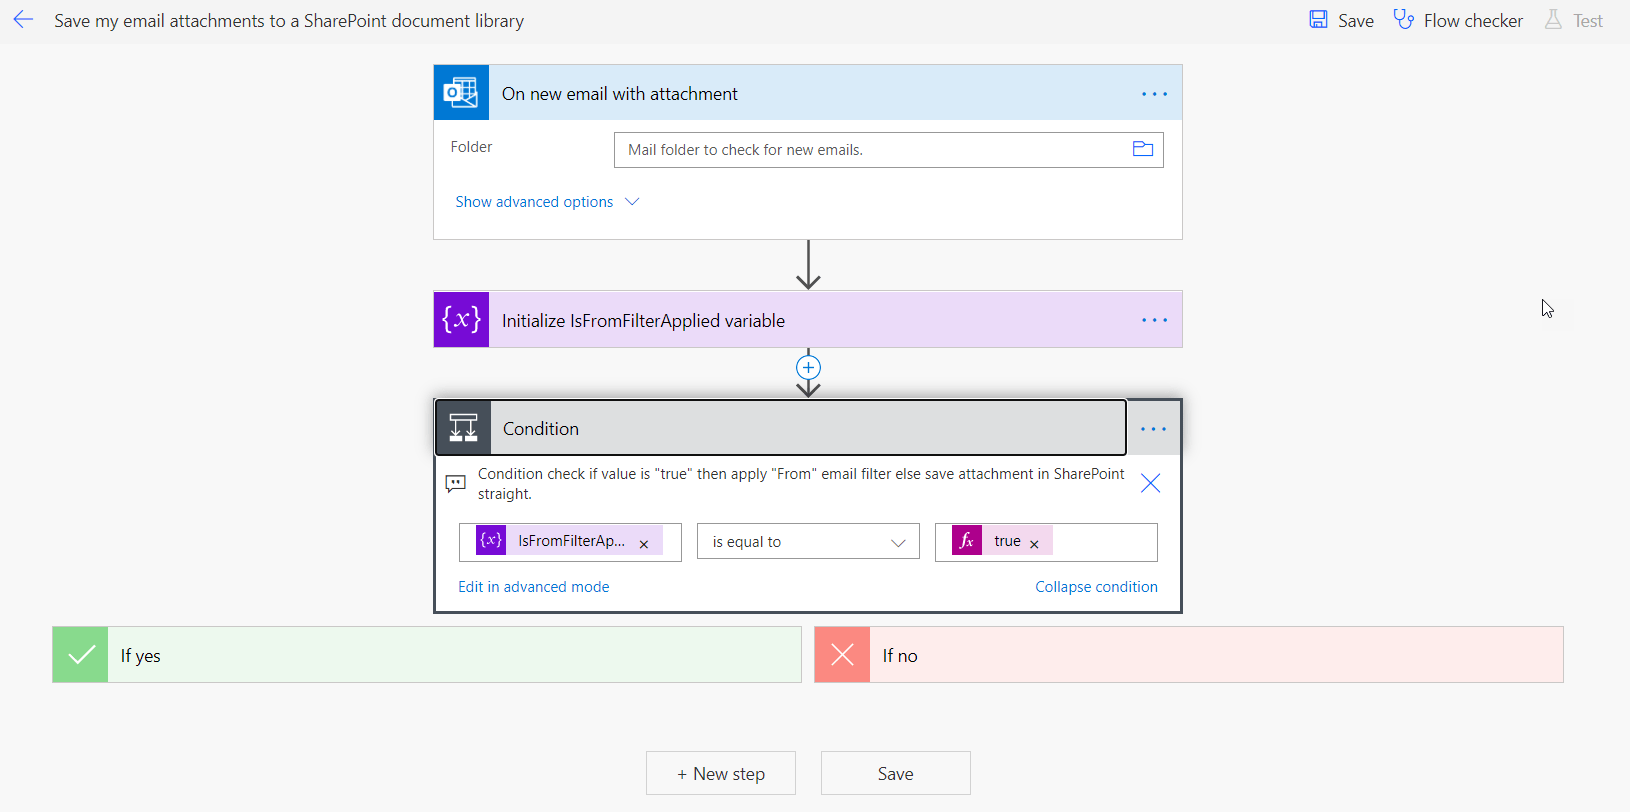 save email attachments to sharepoint